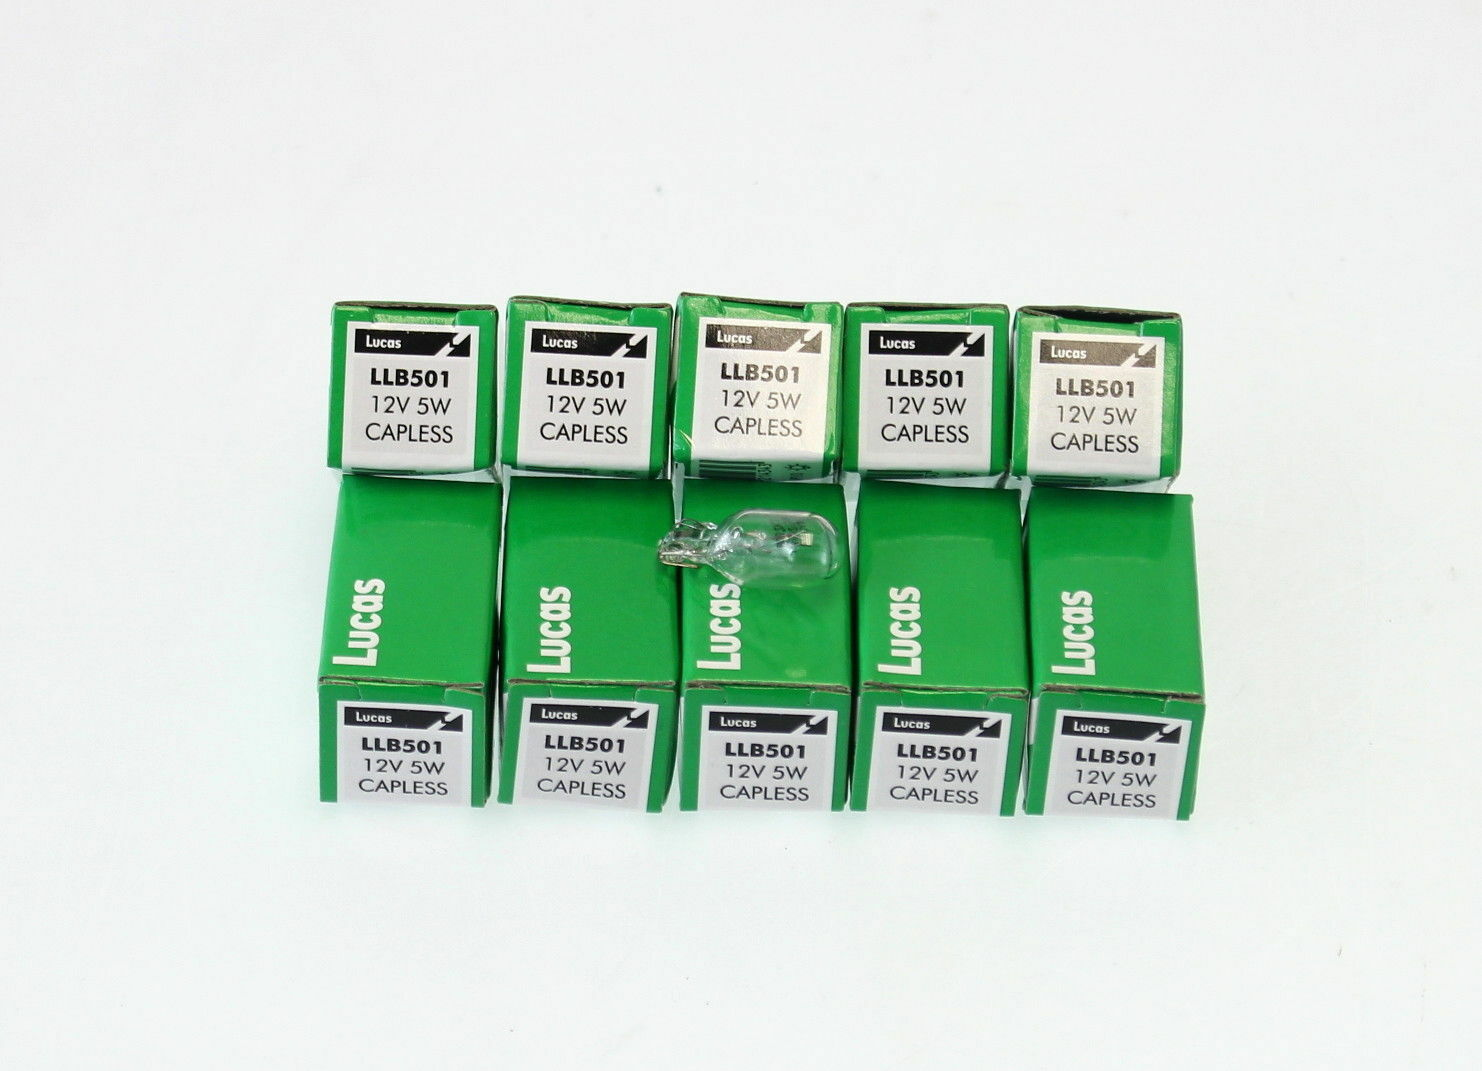 Car Parts - 10x Genuine Lucas Capless Bulbs 501 LLB501 12v 5W Side Light Number Plate Bulb